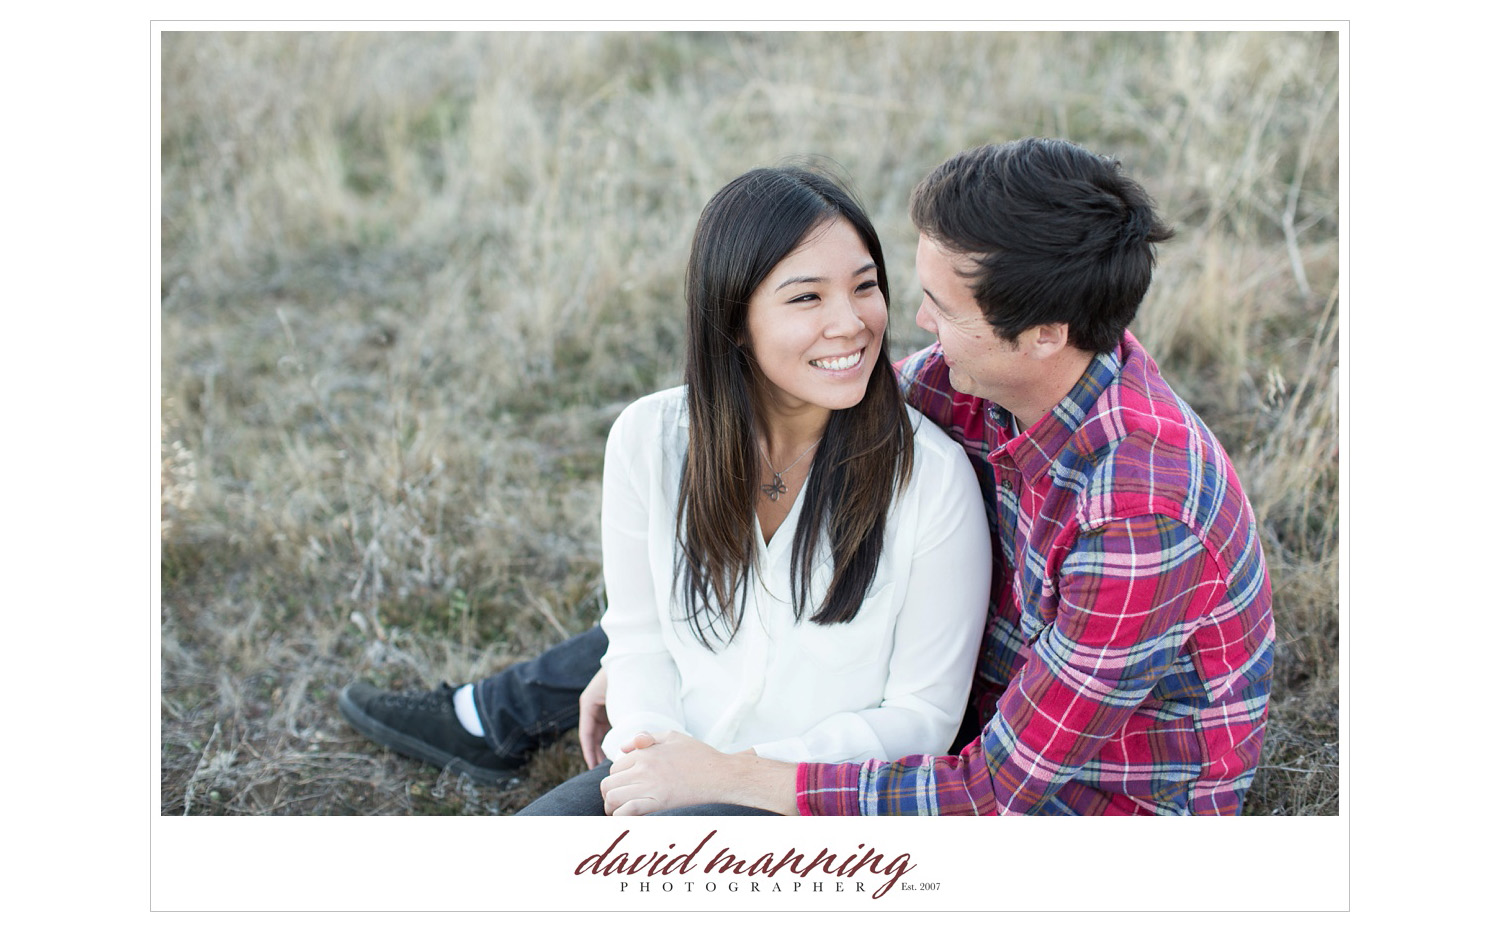 Del-Mar-Ramona-Julian-Engagement-Photos-David-Manning-Photographers-0016.jpg